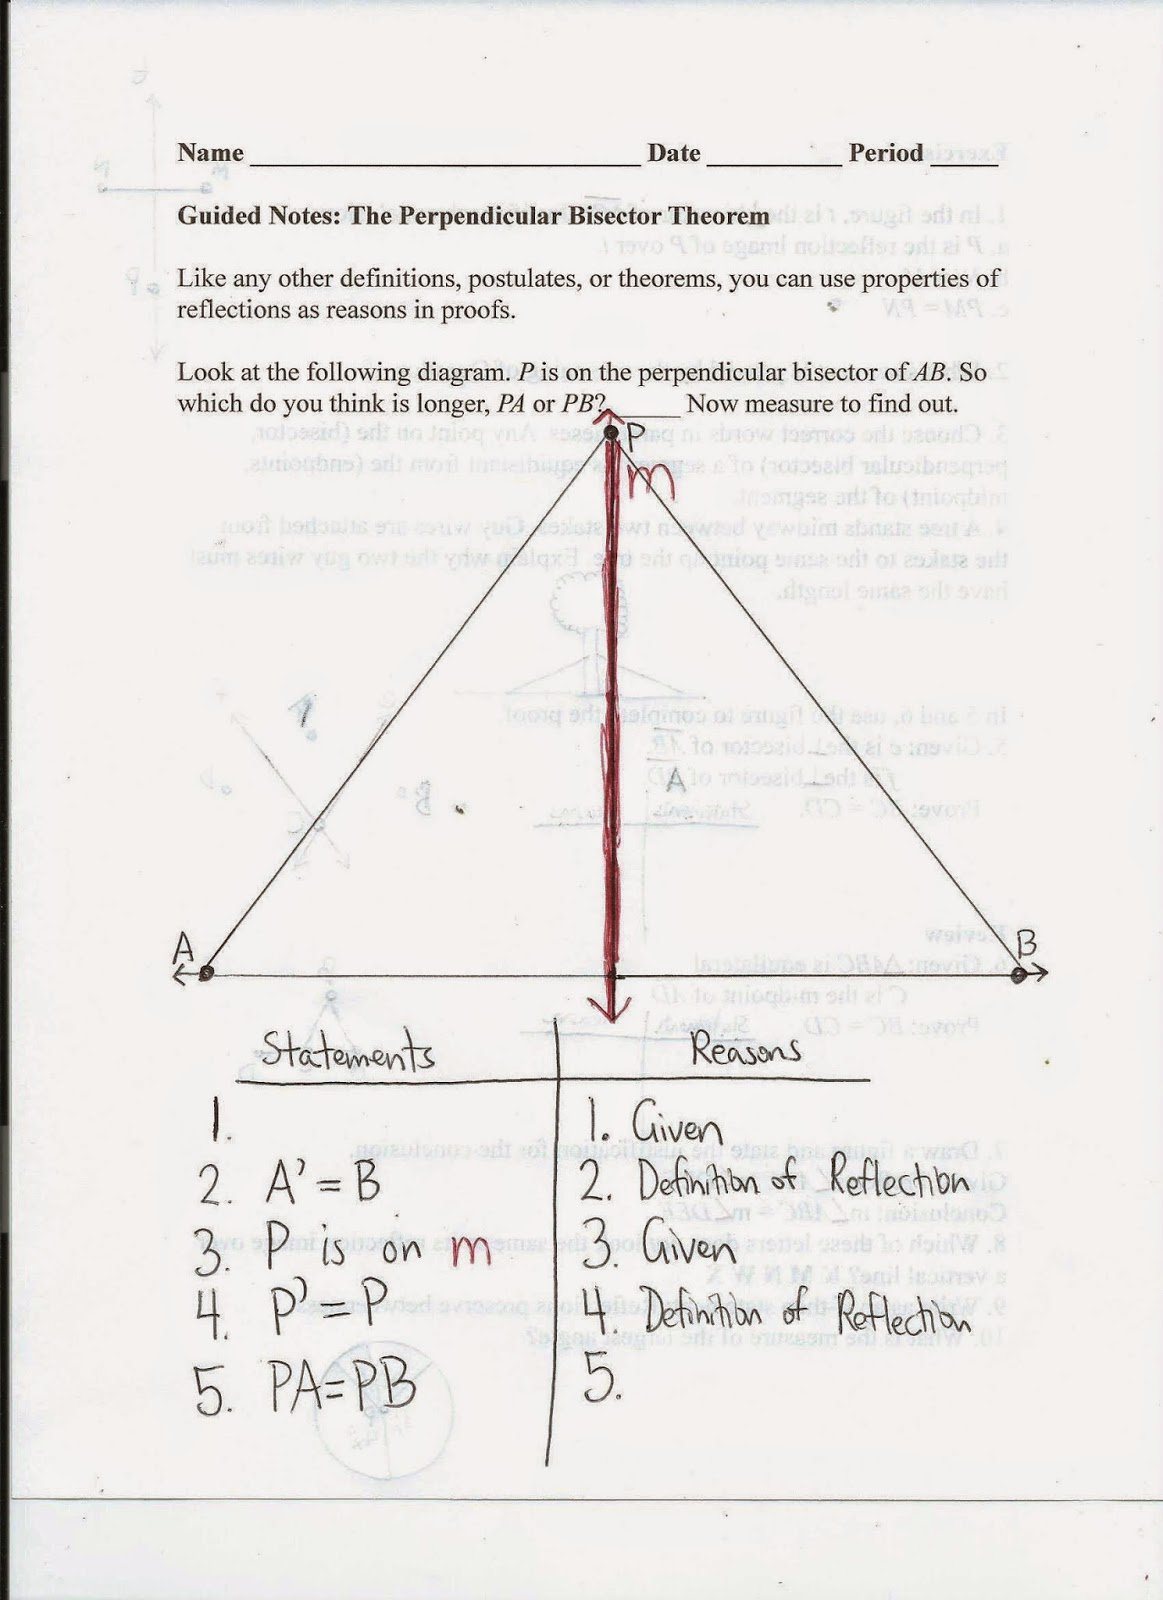 Angle Bisector theorem Worksheet Elegant Worksheet 5 4 Angle and Perpendicular Bisectors